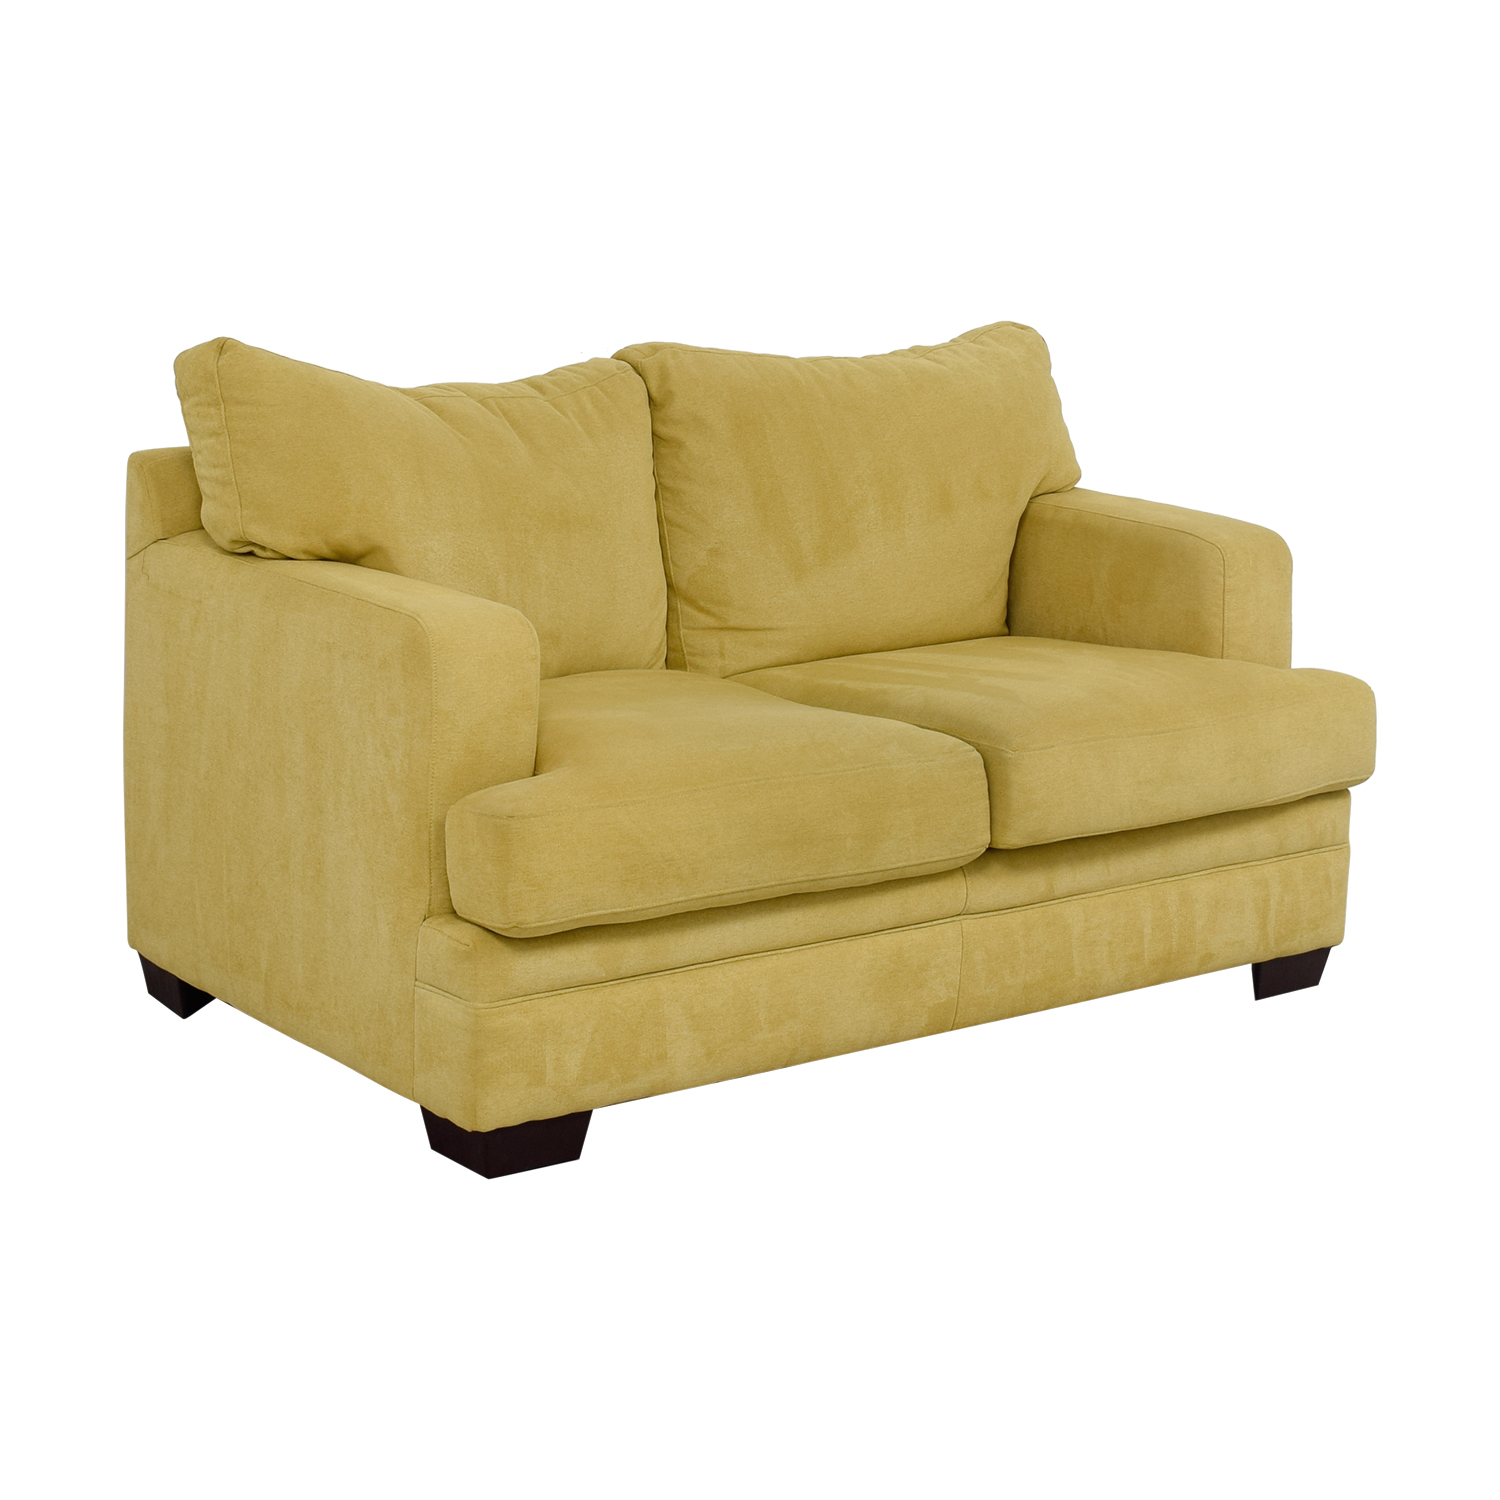 Jennifer Convertibles Loveseats Coffee Tables Ideas